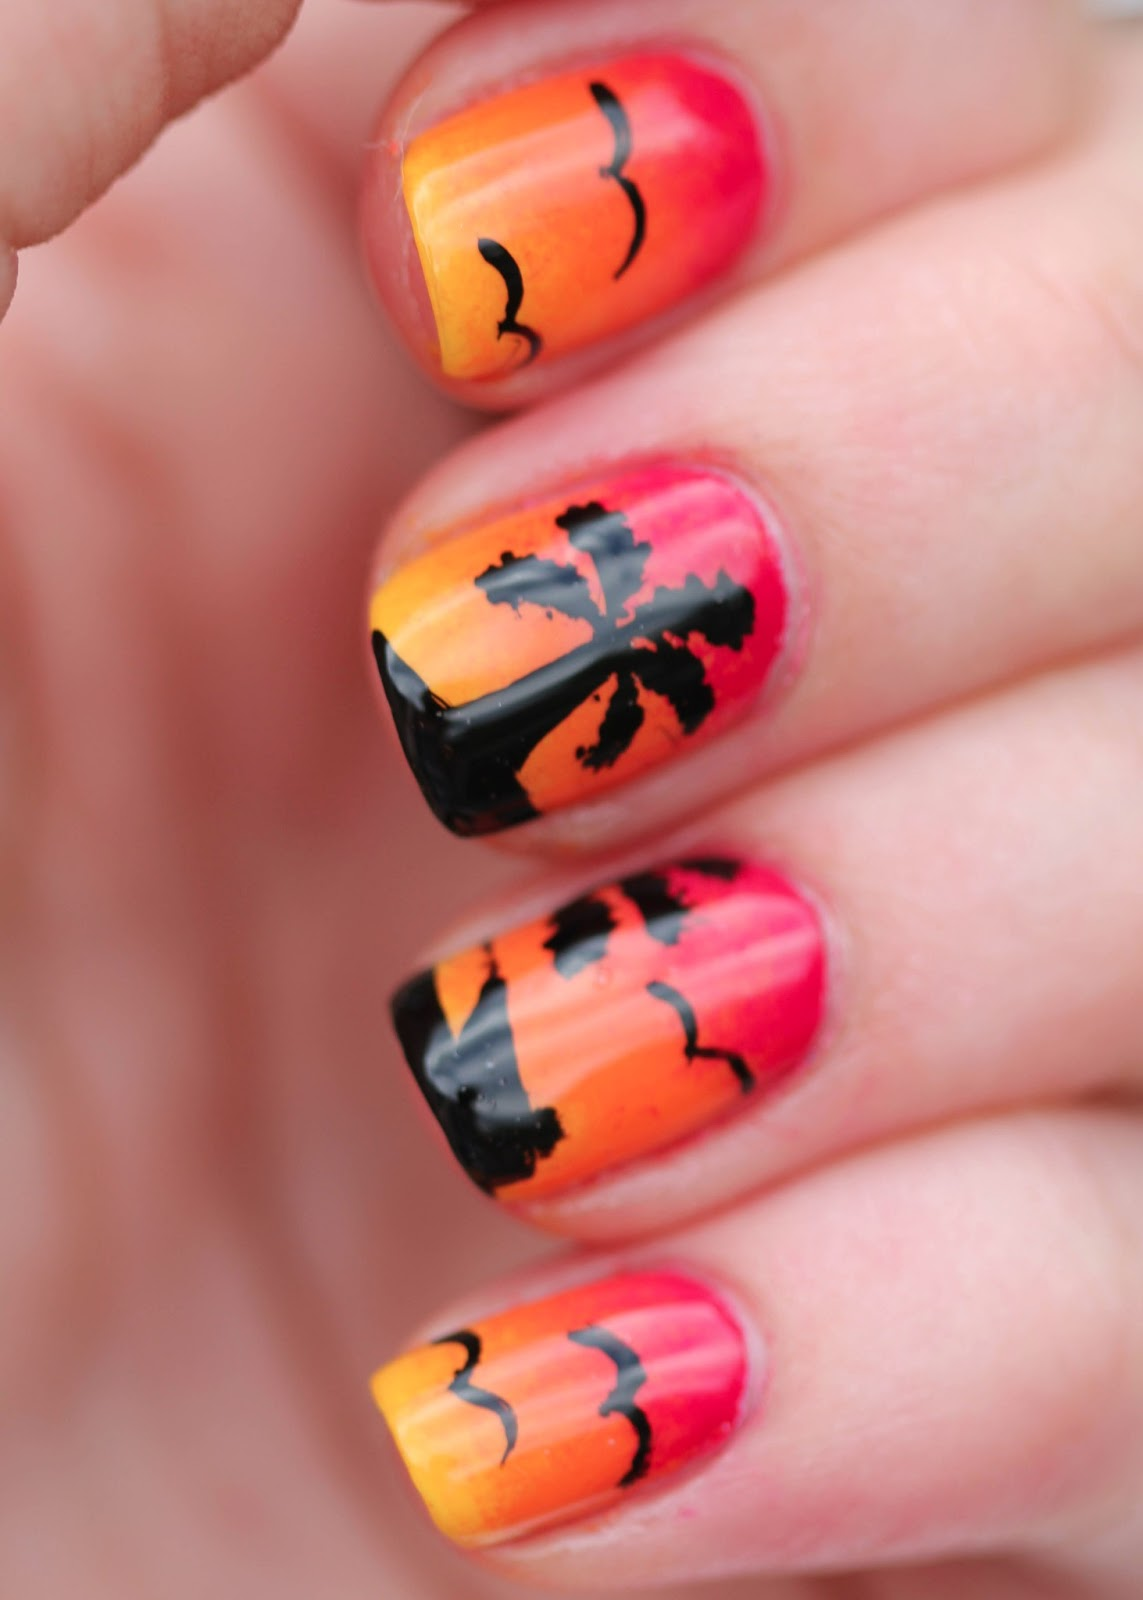 sunset nail art with palm trees birds and boat - Sunset Nail Design. Sunset Ombre Dolphin Nail Art. Nail Art